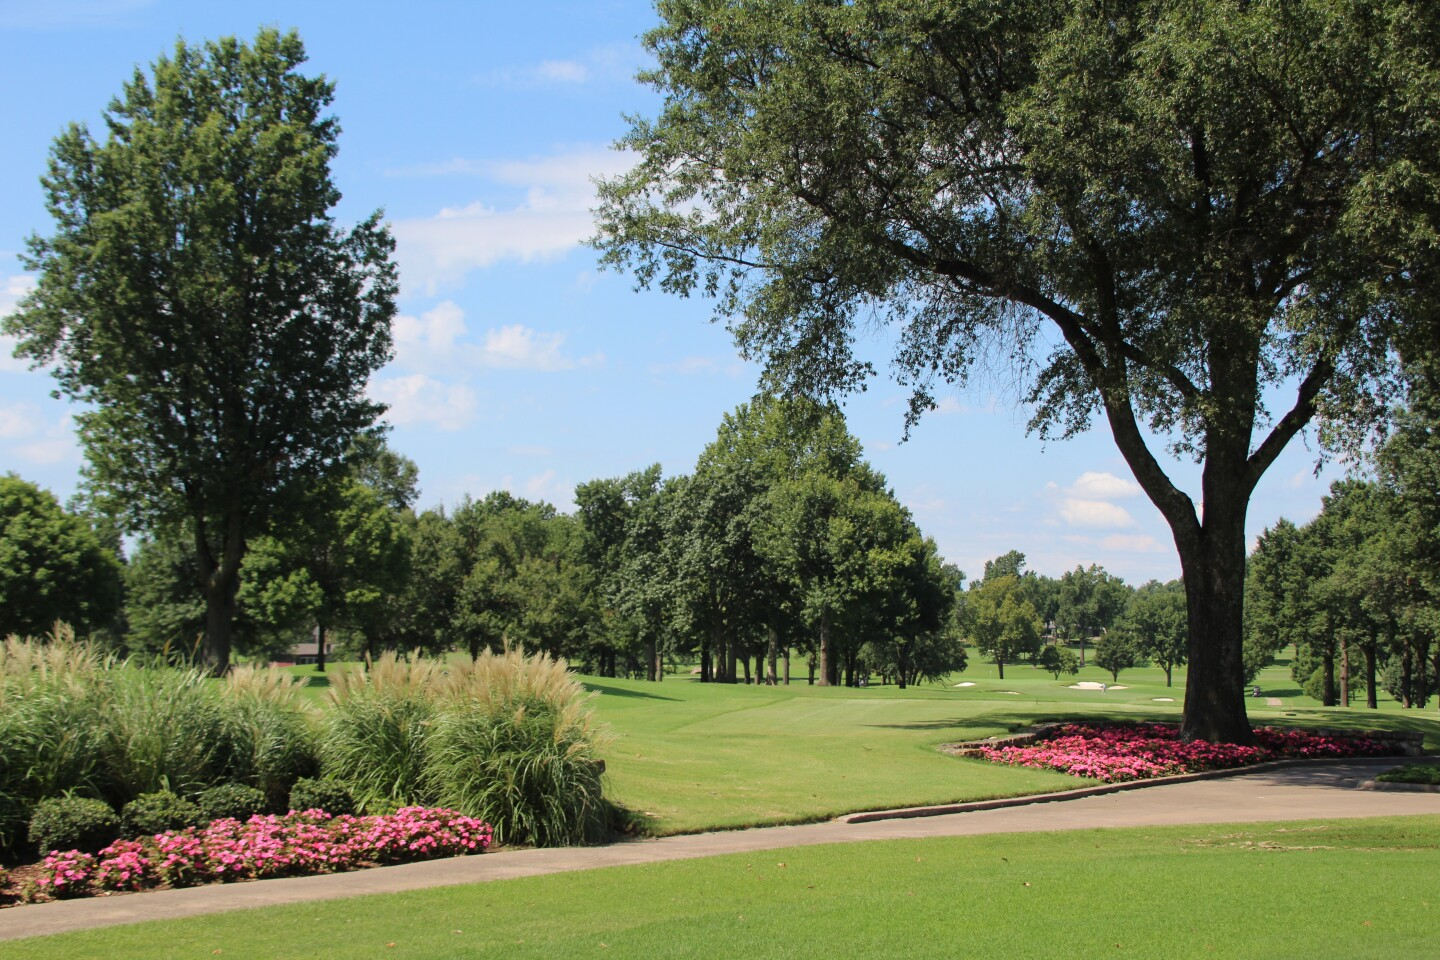 Tree fairway roses - Gateway First Bank Tulsa Junior Hosted by Bo Van Pelt - 2020.JPG